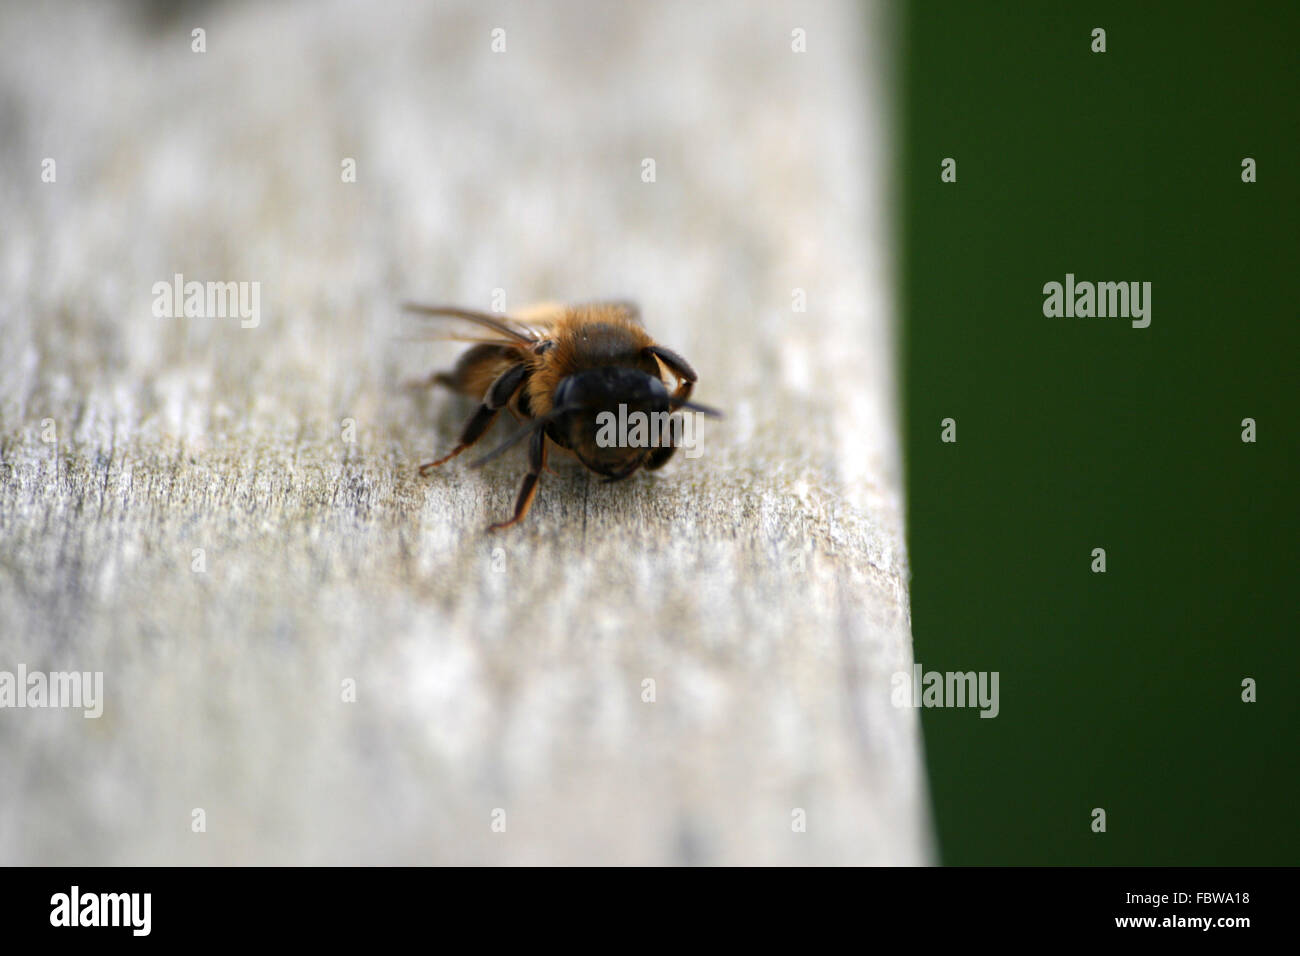 Close Up Of A Tired Bee, Cornwall, England Stock Photo